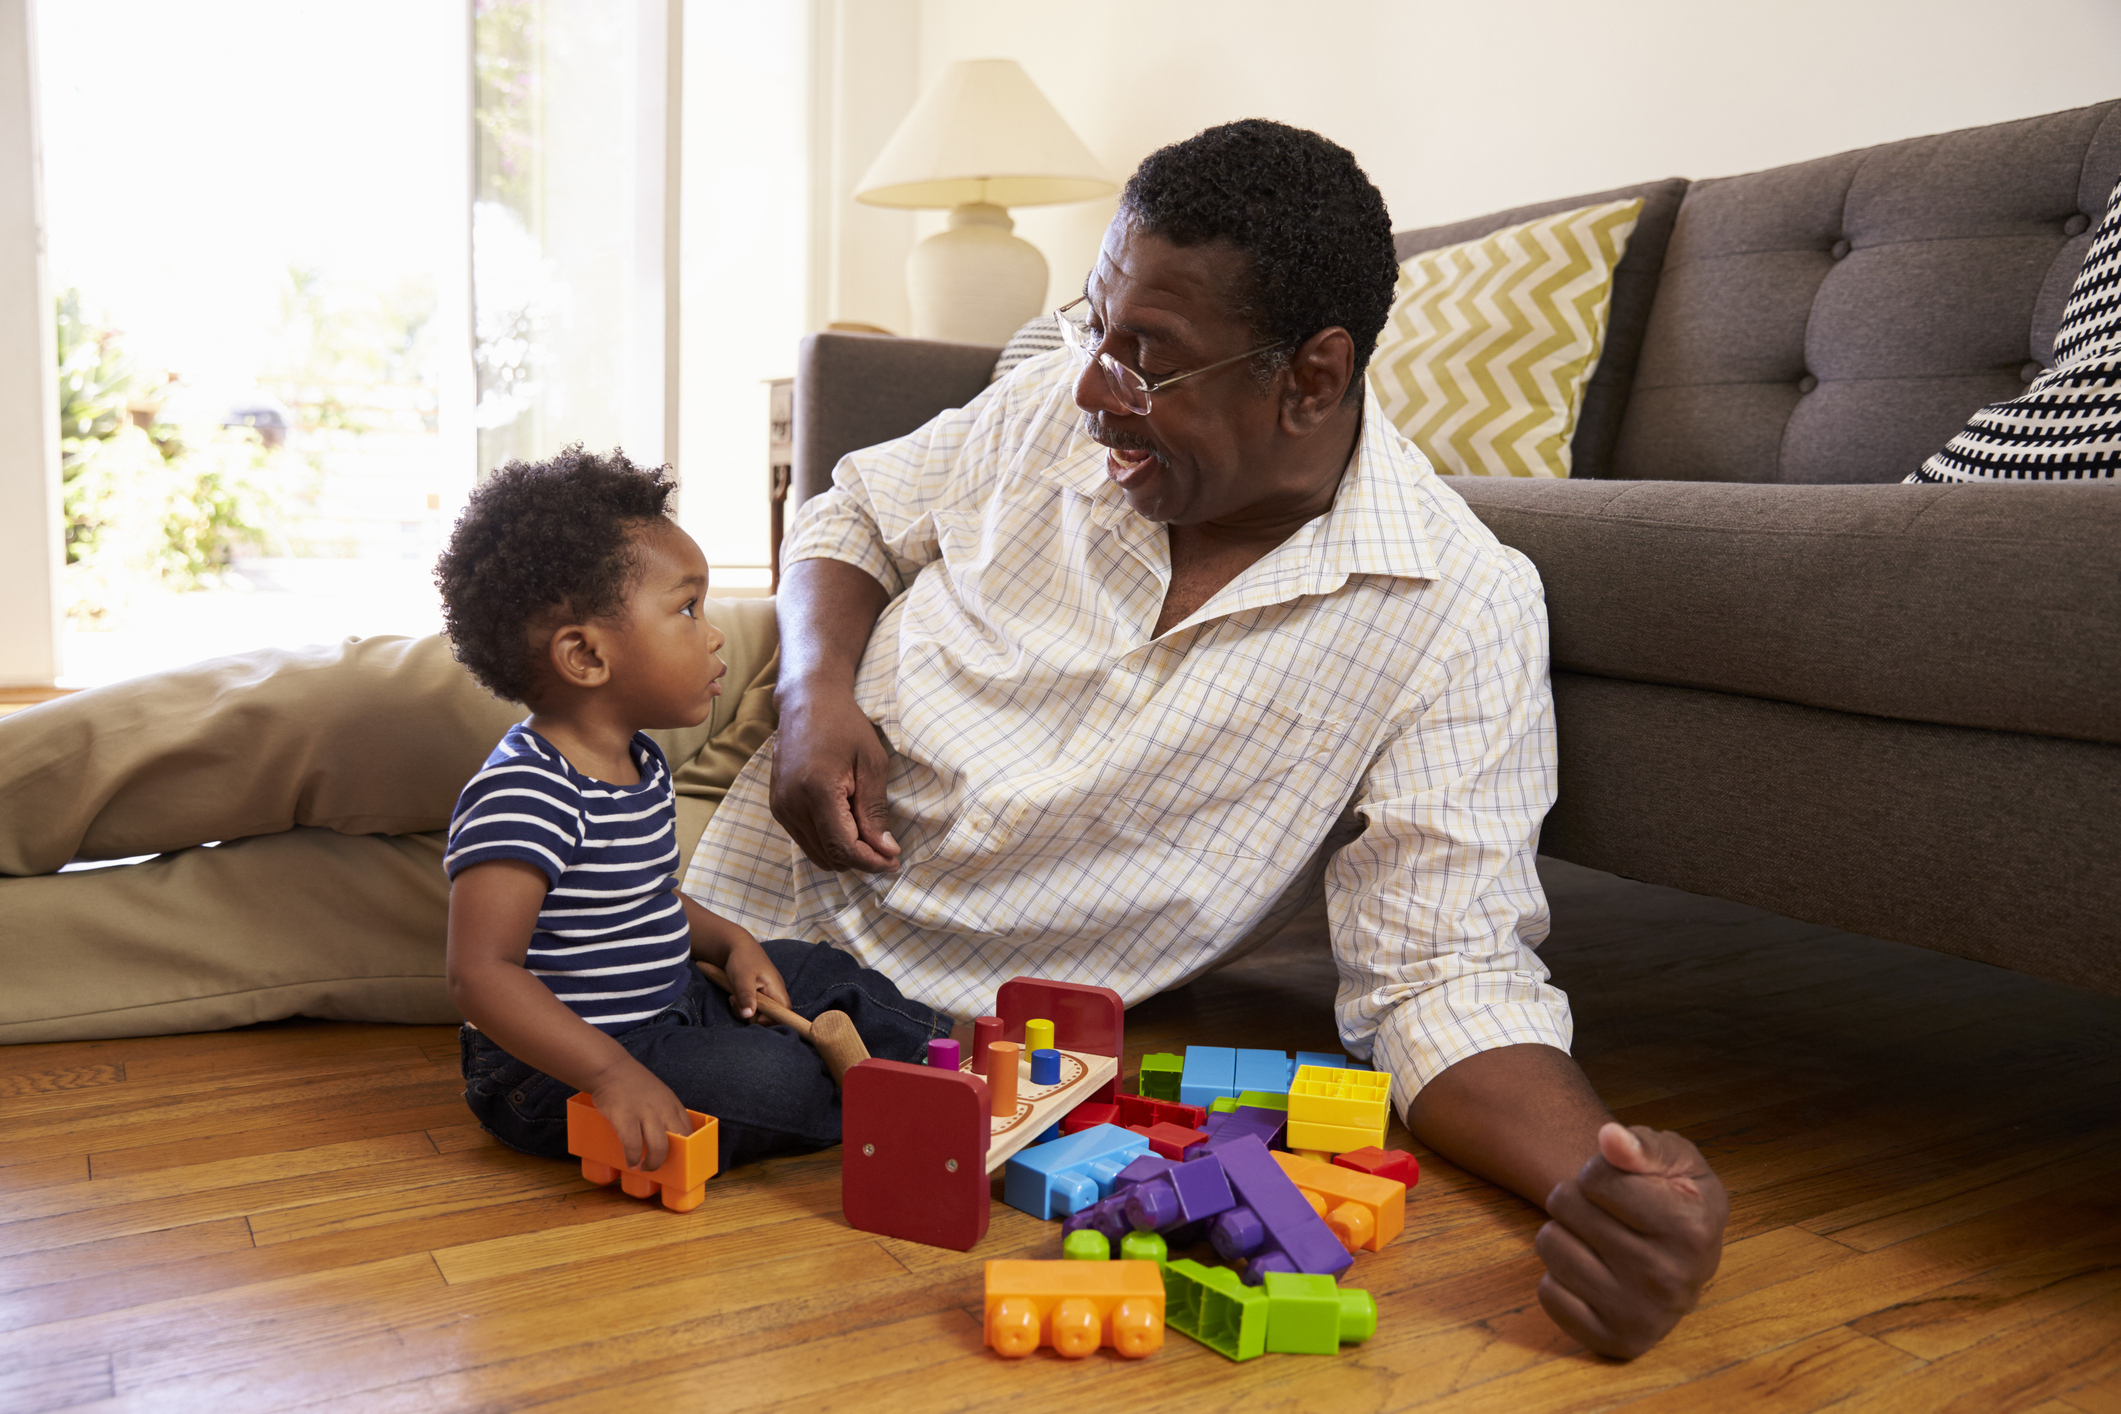 Male caregiver playing on the floor with a sitting baby and some colorful blocks